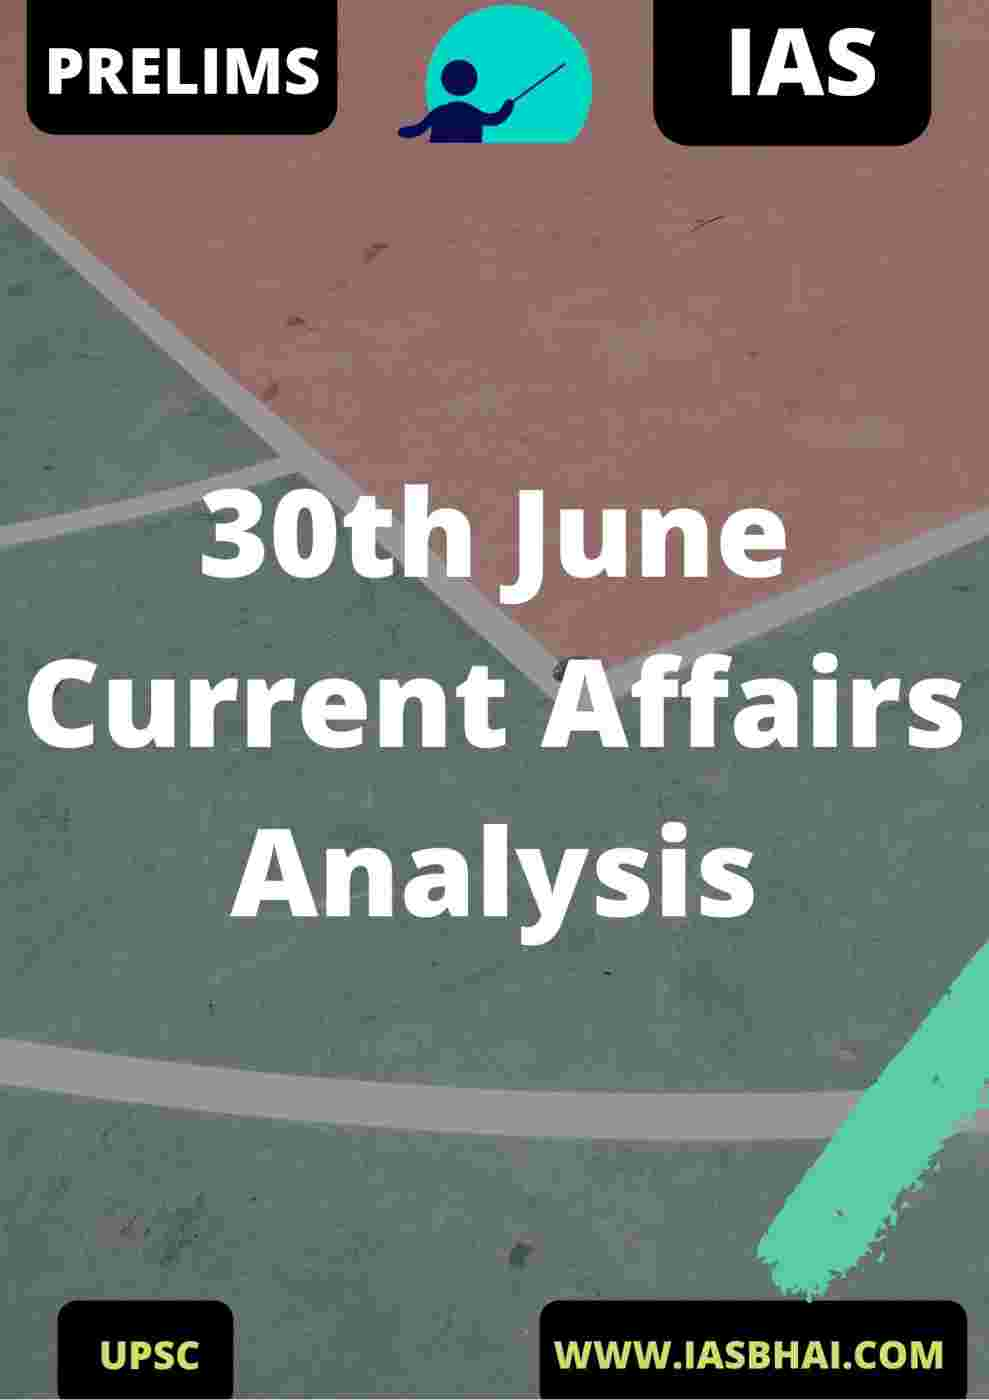 30th June Current Affairs News Analysis Prelims & Mains 2020